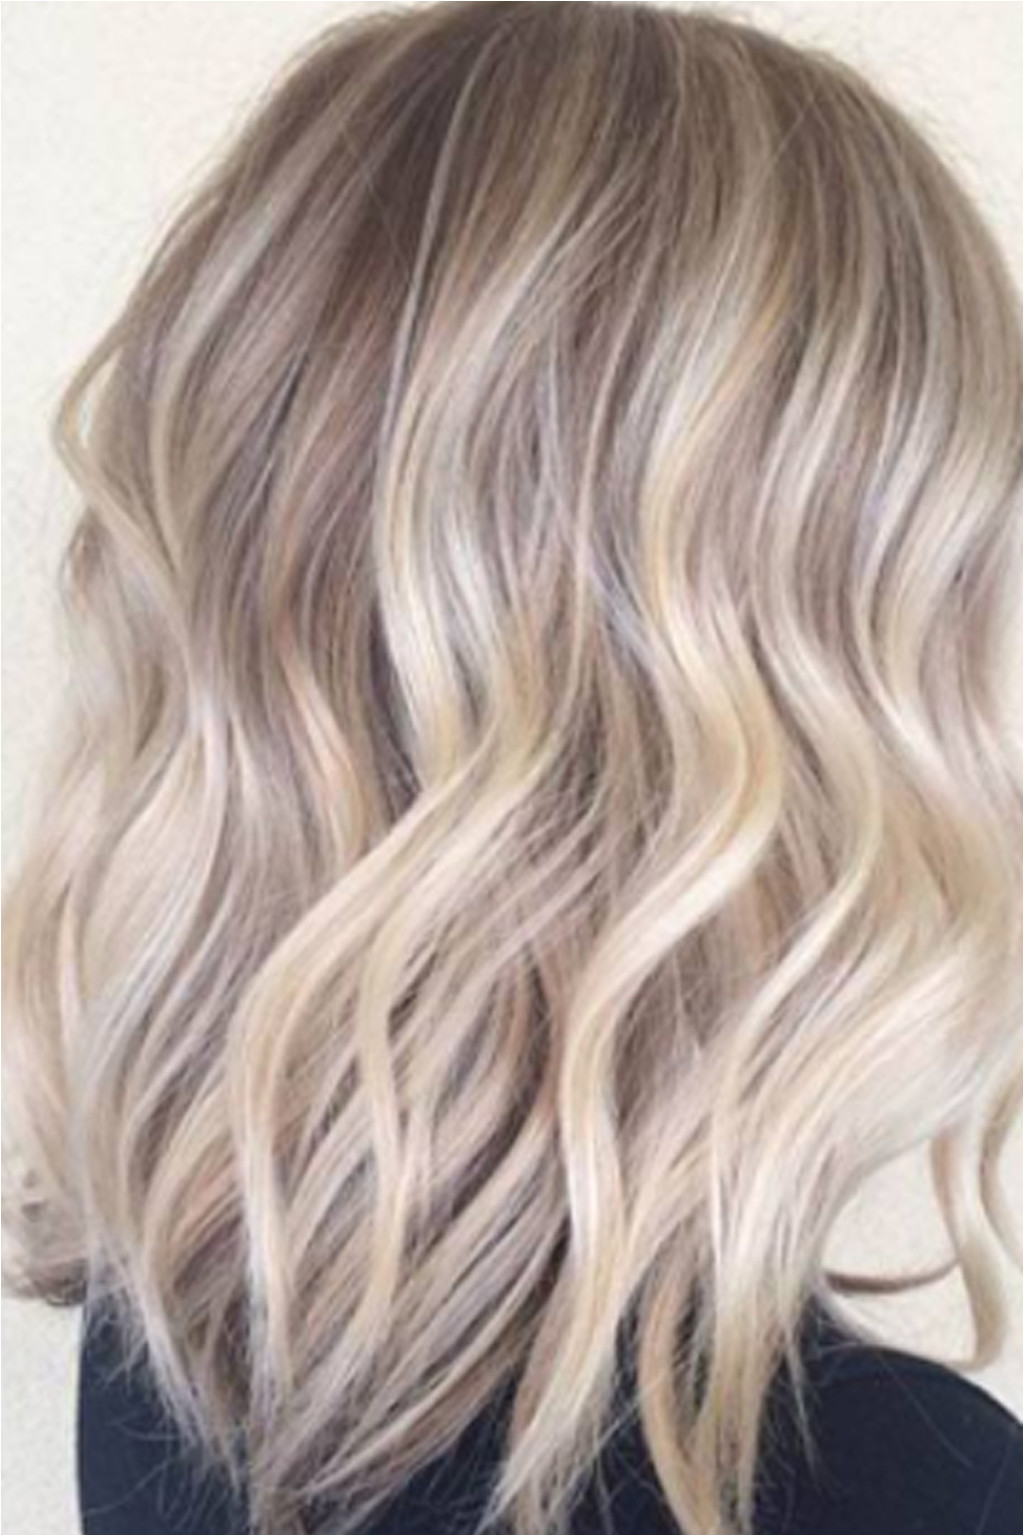 Baby Blonde Gorgeous Hair Colors That Will Be Huge in 2017